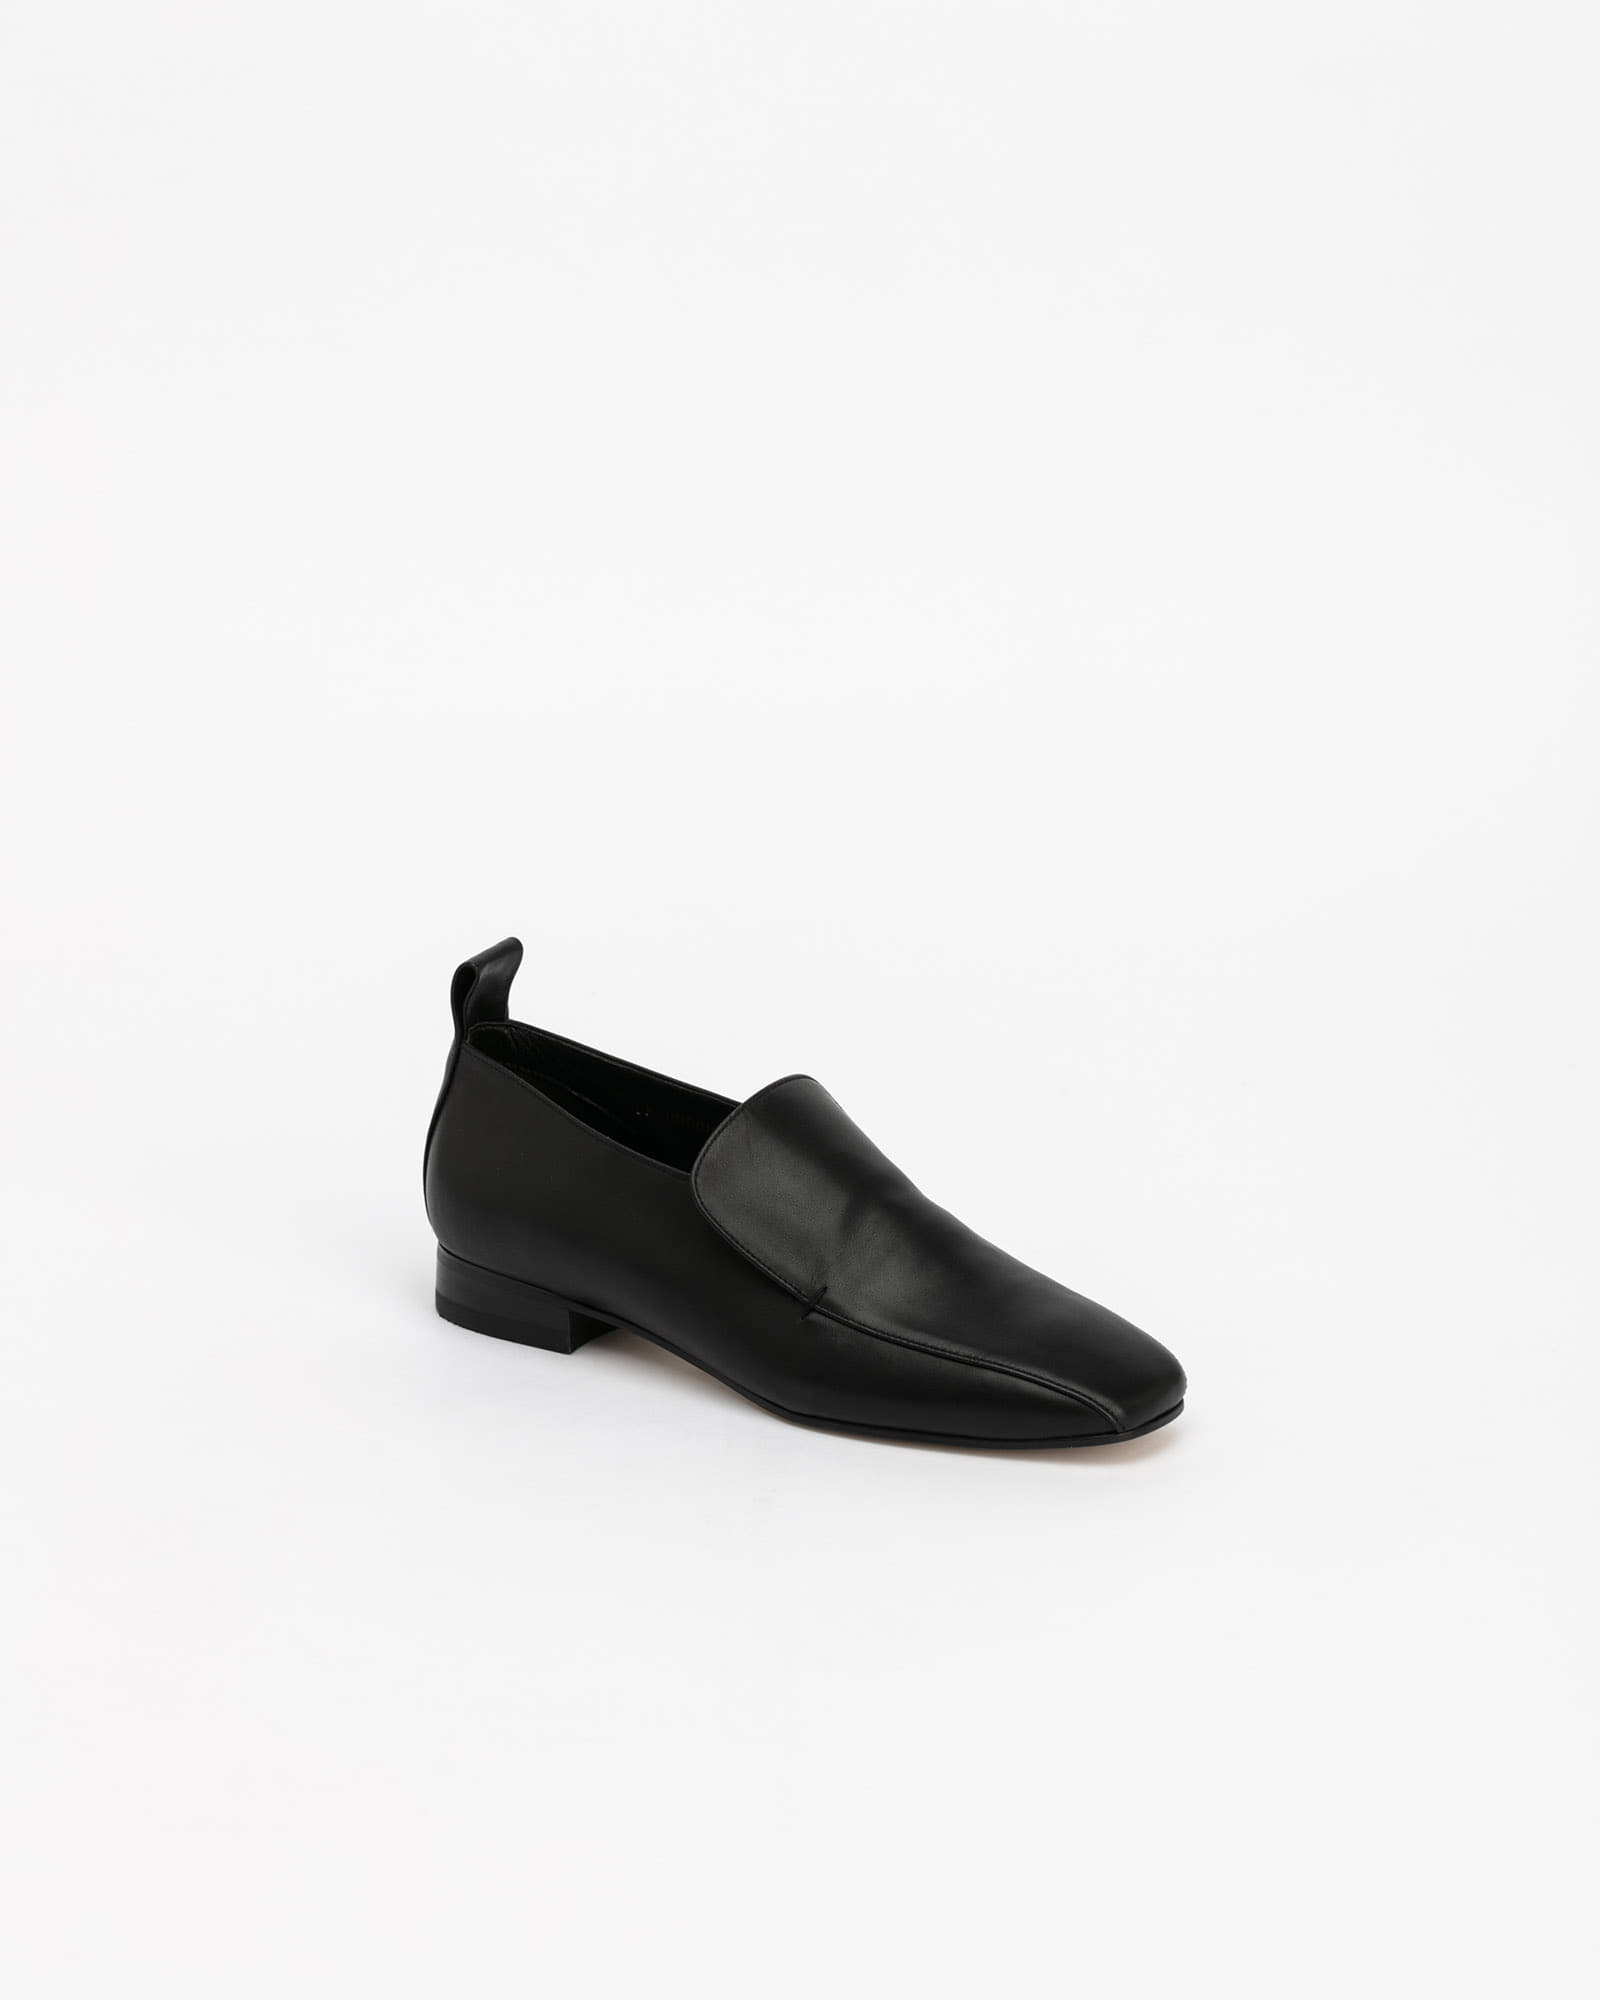 Palais Slip-on Loafers in Black